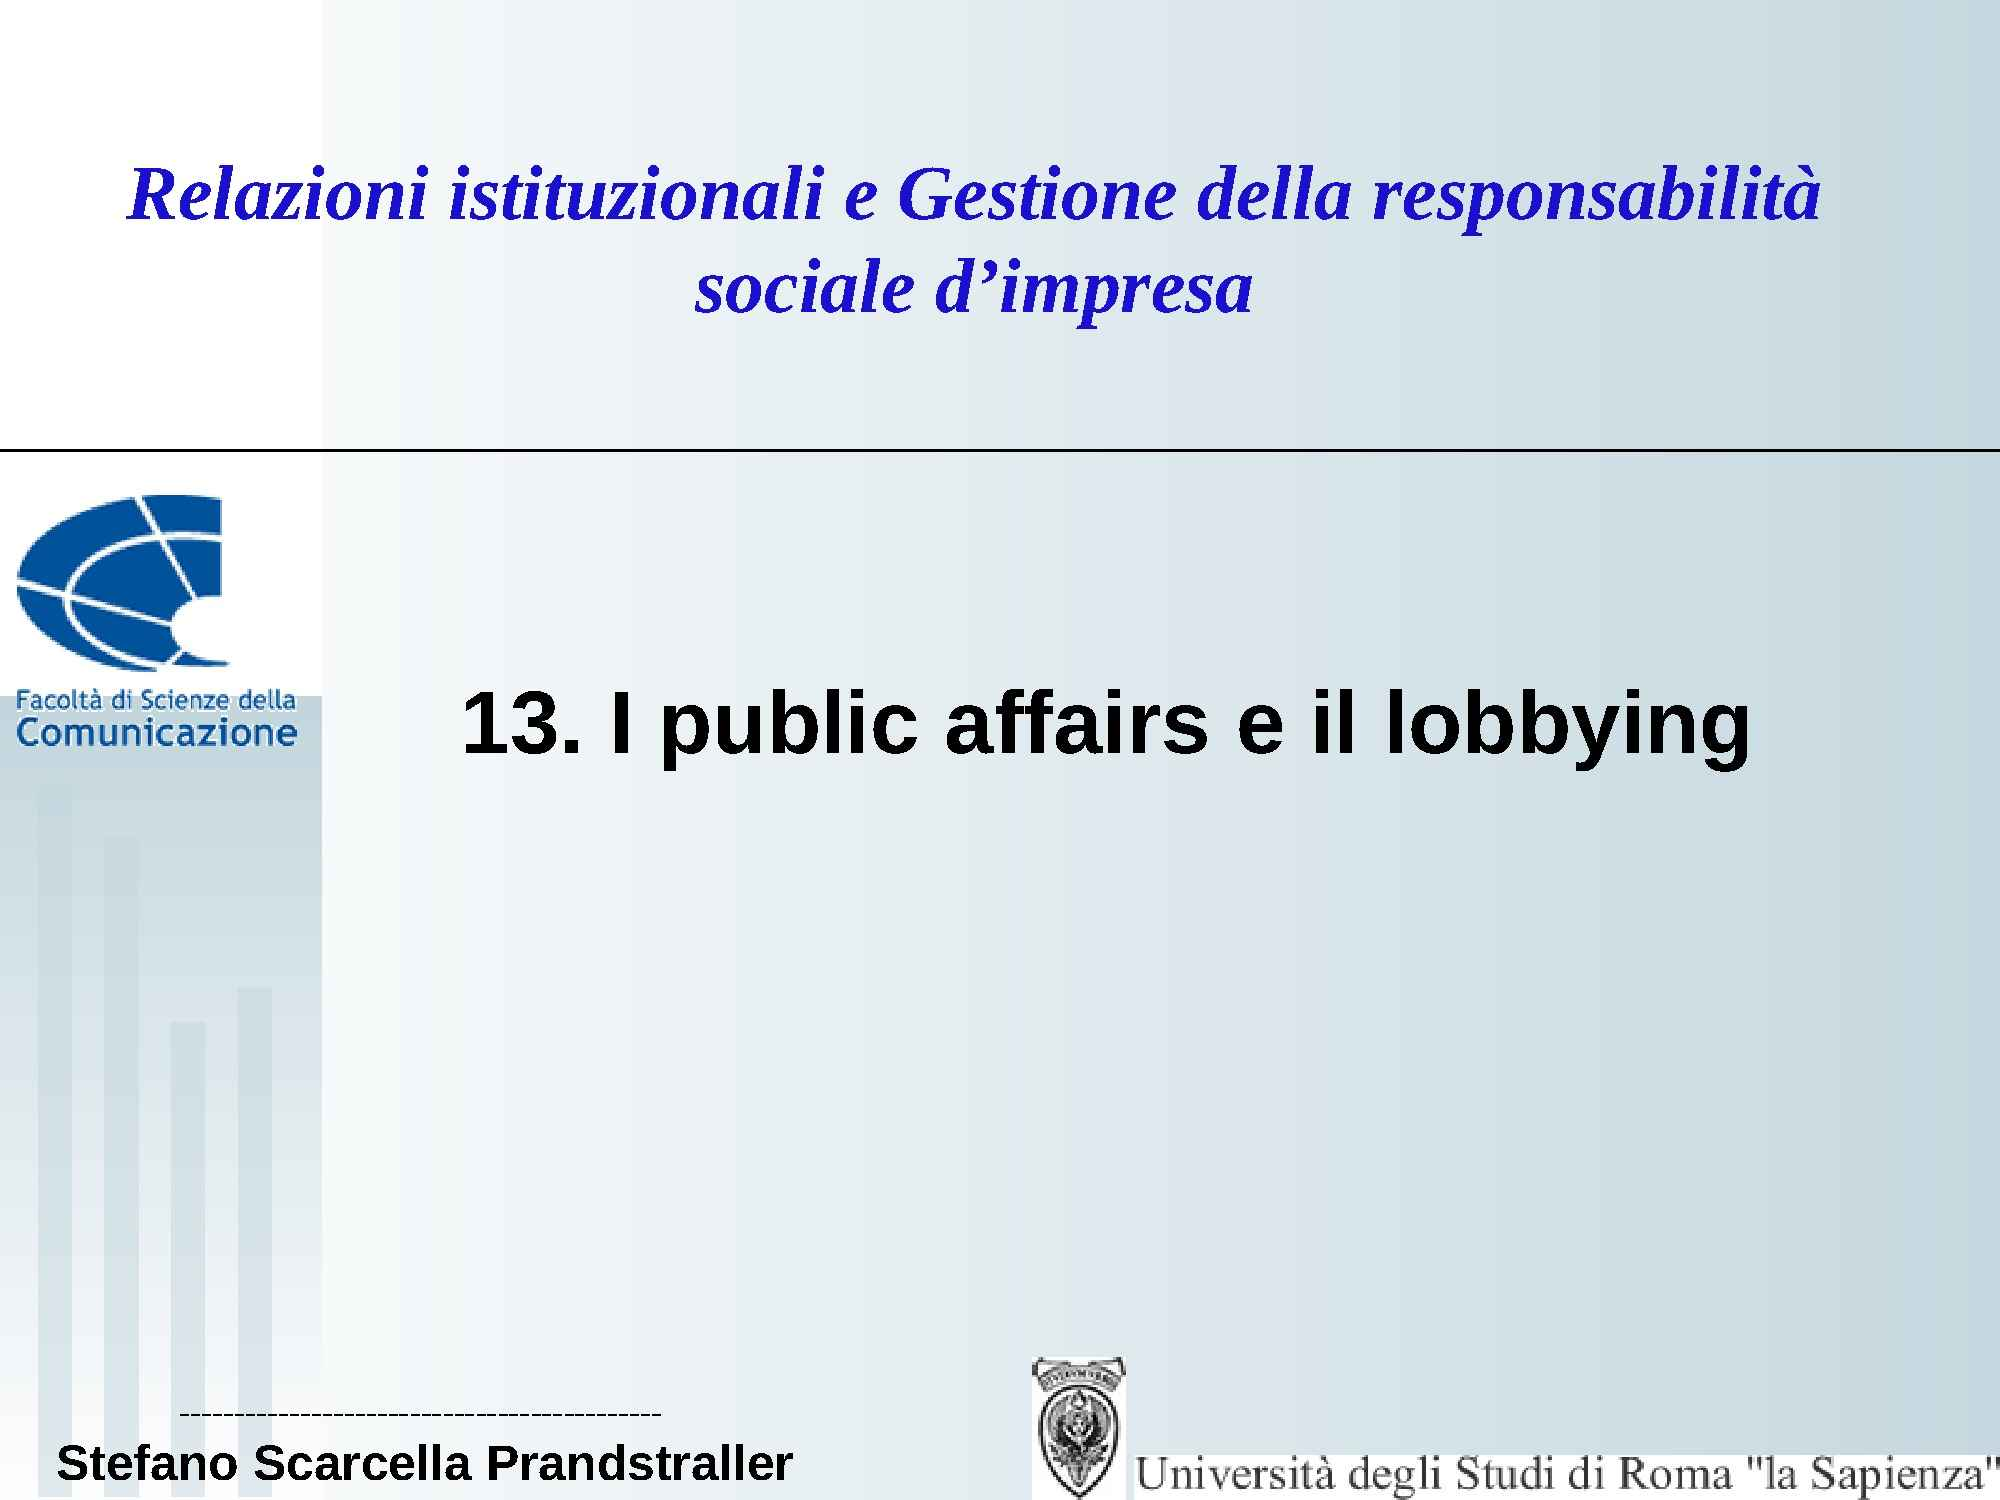 Public affairs e lobbying